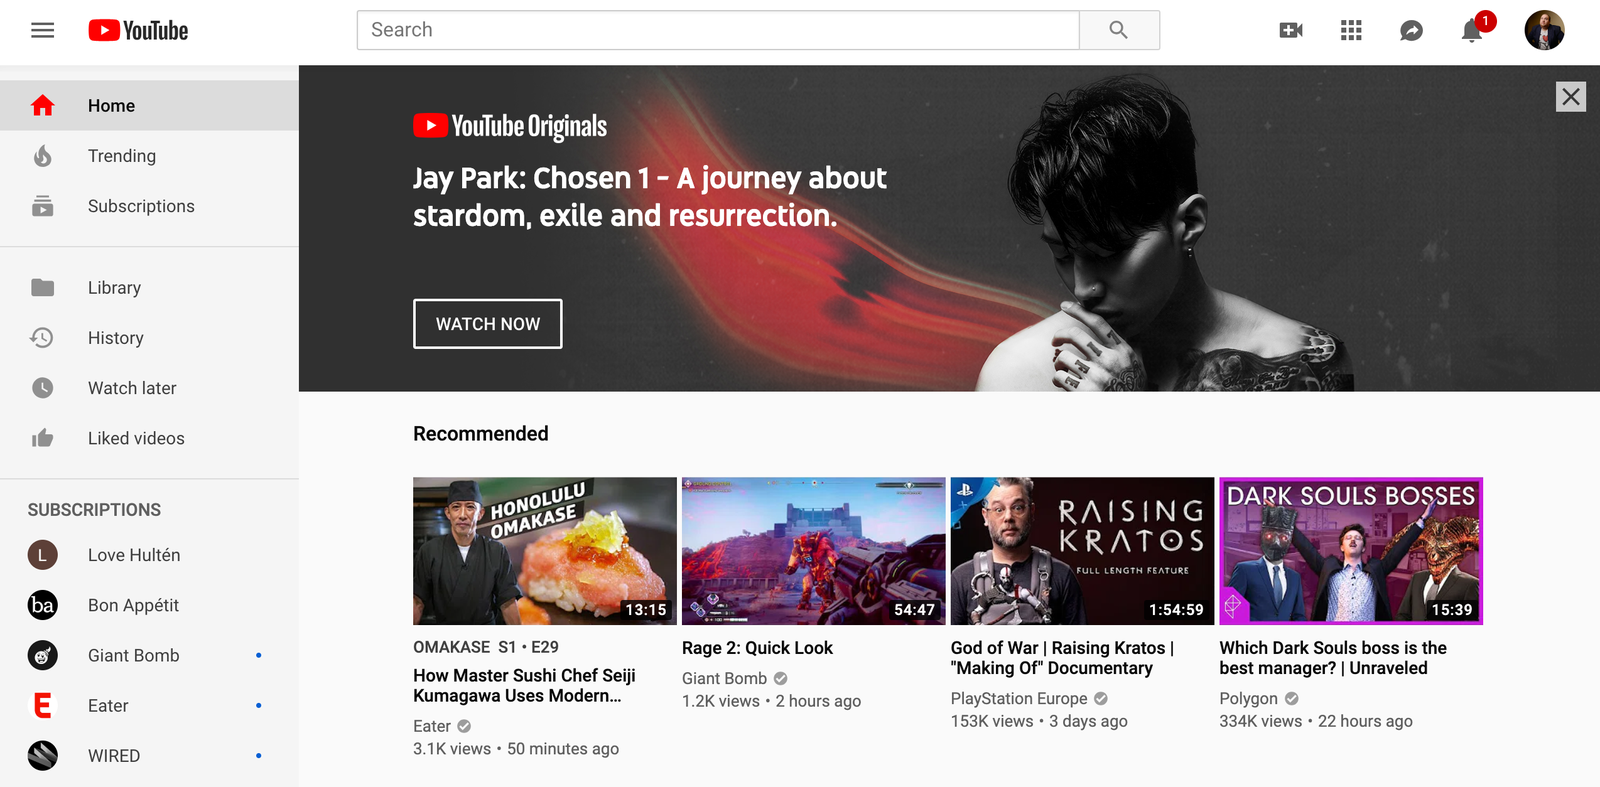 This is how the YouTube home page normally looks.